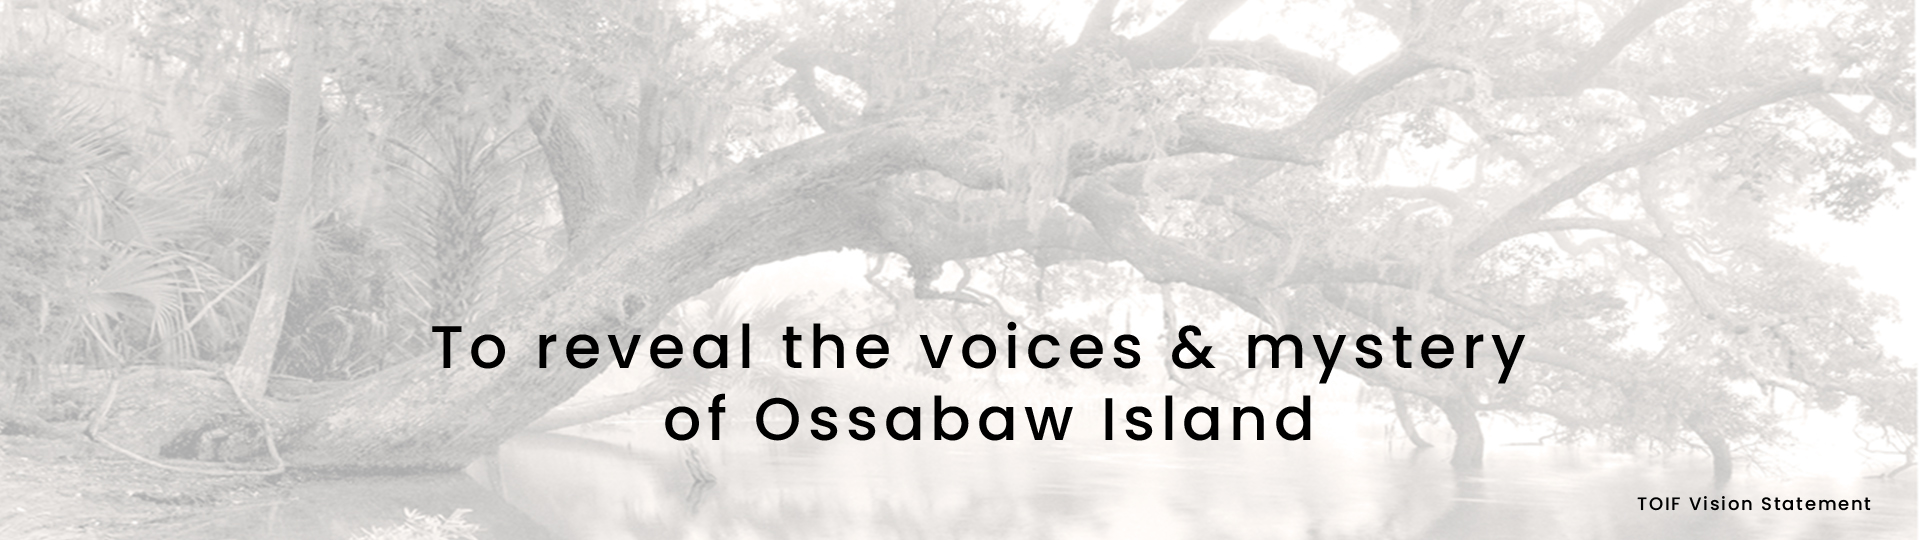 To reveal the voices and mystery of Ossabaw Island